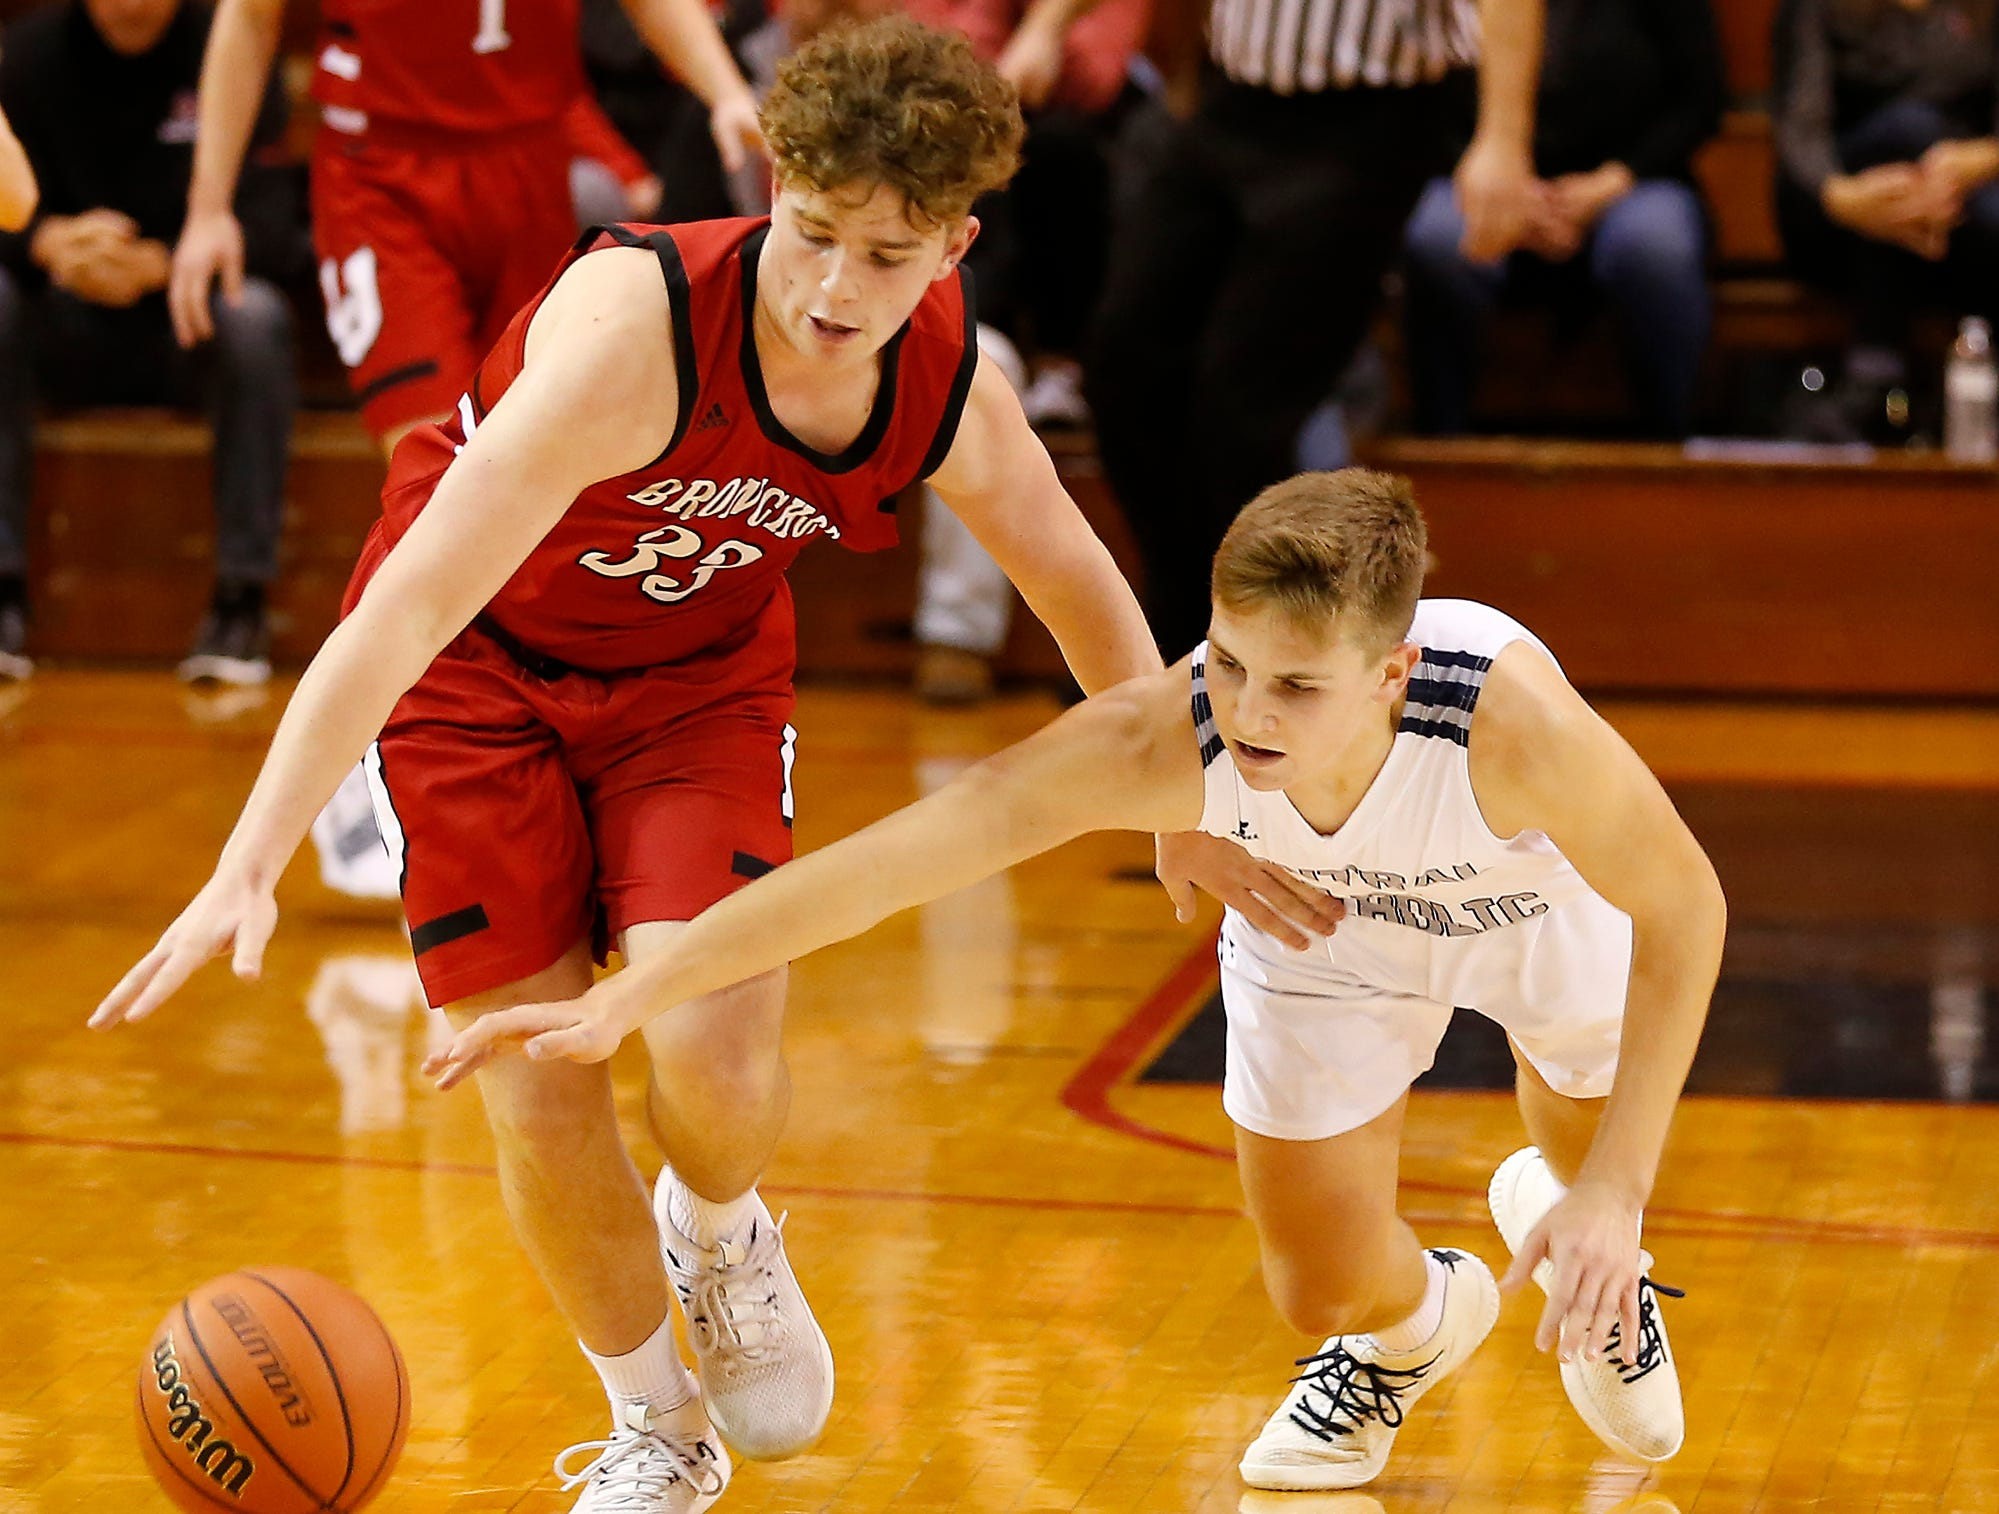 Ashton Beaver of Lafayette Jeff steals the ball from A. J. Bordenet of Central Catholic in the championship of the Franciscan Health Hoops Classic Saturday, December 1, 2018, at Lafayette Jeff. Jeff defeated Central Catholic 76-73 for the title.